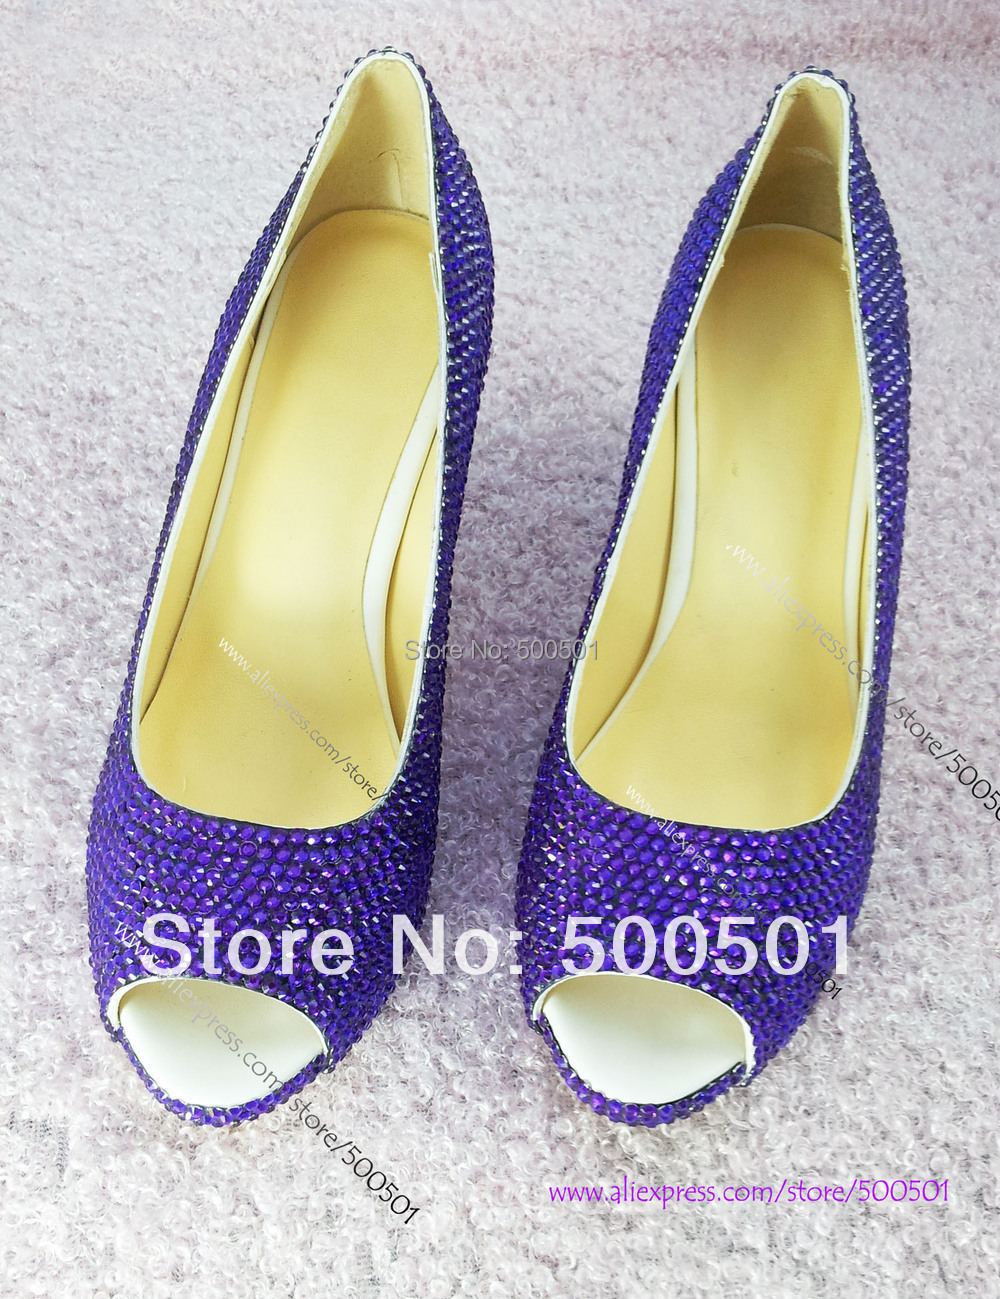 Aliexpress.com : Buy Womens low HEEL FASHION SHOES sparkly CRYSTAL ...